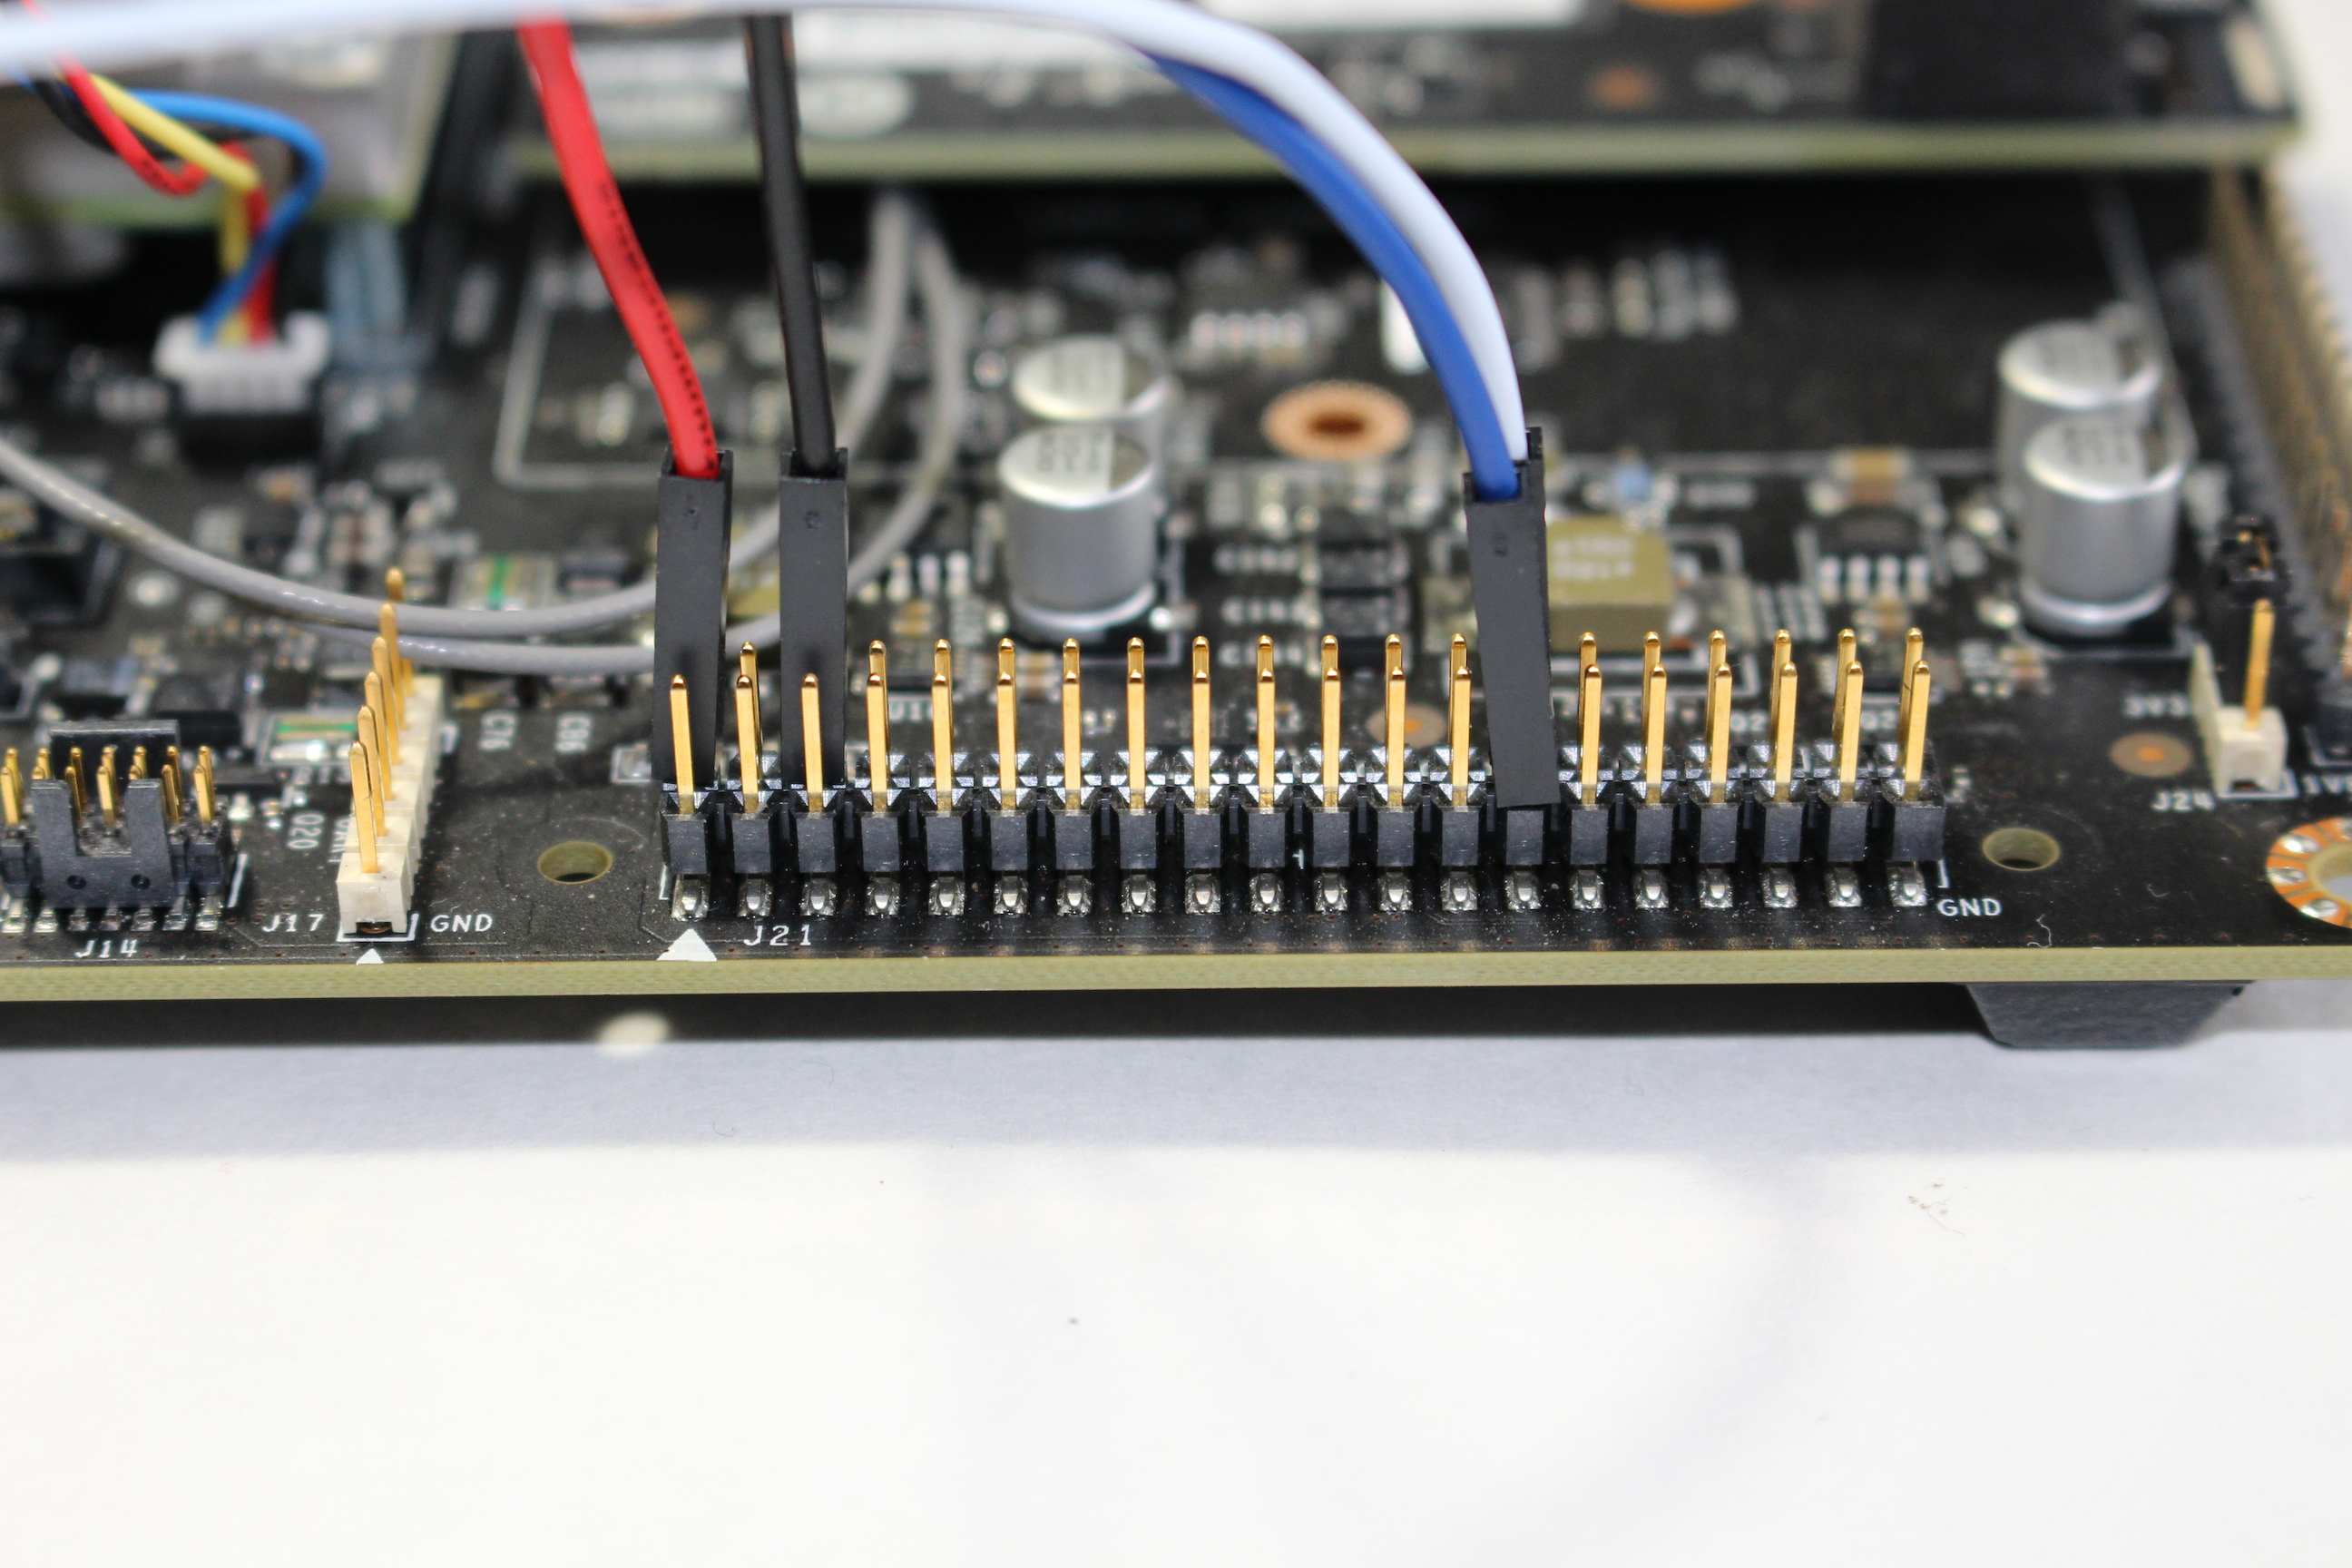 I2C Connection for Jetson TX1